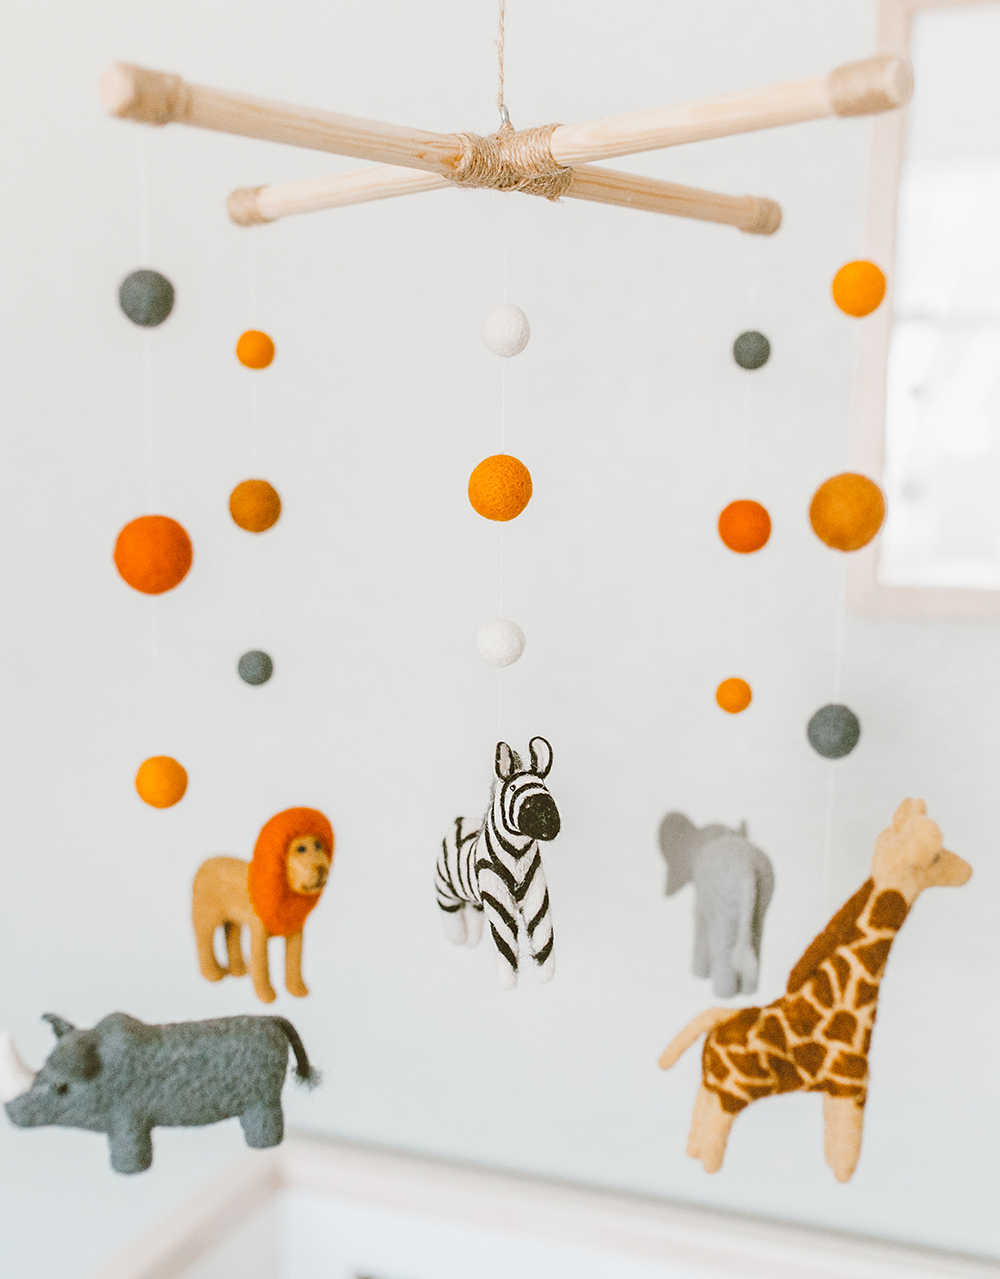 livvyland-blog-olivia-watson-baby-boy-gender-neutral-safari-nursery-theme-tour-reveal-earth-tones-animal-mobile-2